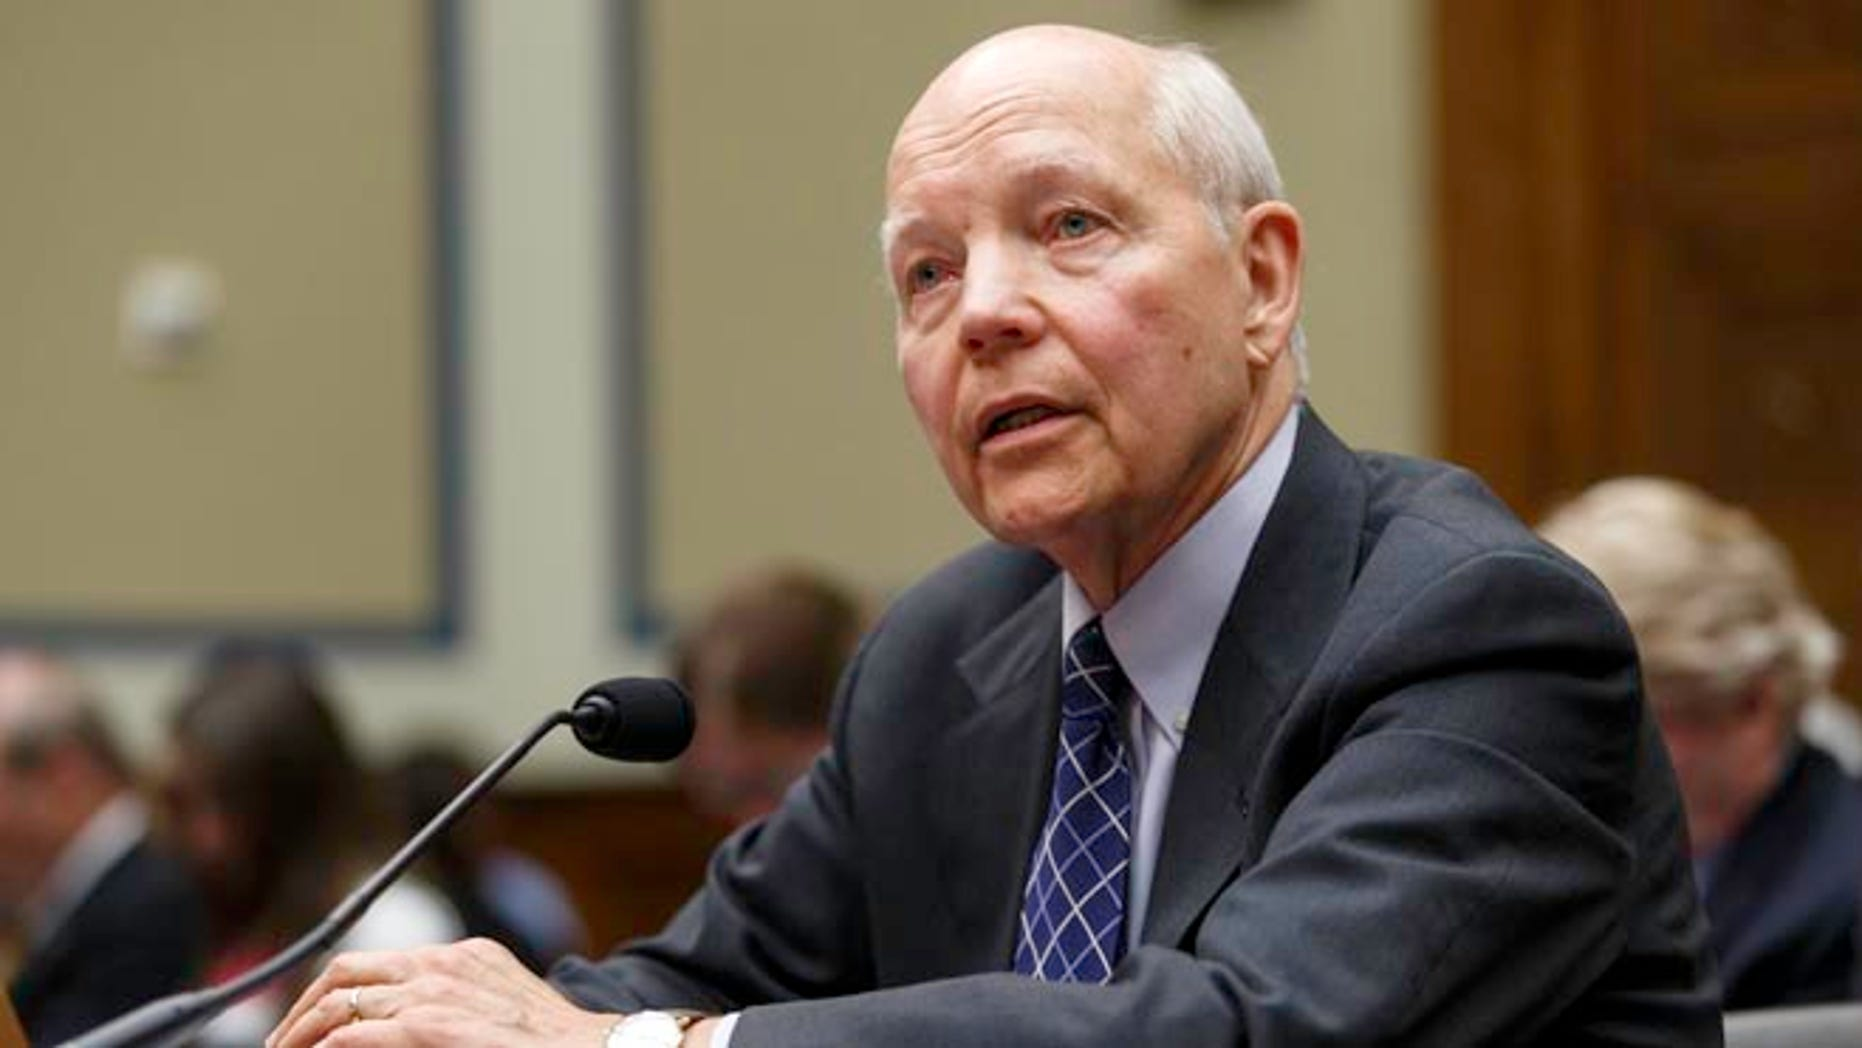 Internal Revenue Service Commissioner John Koskinen testifies under subpoena before the House Oversight Committee on Capitol Hill in Washington, Monday, June 23, 2014.